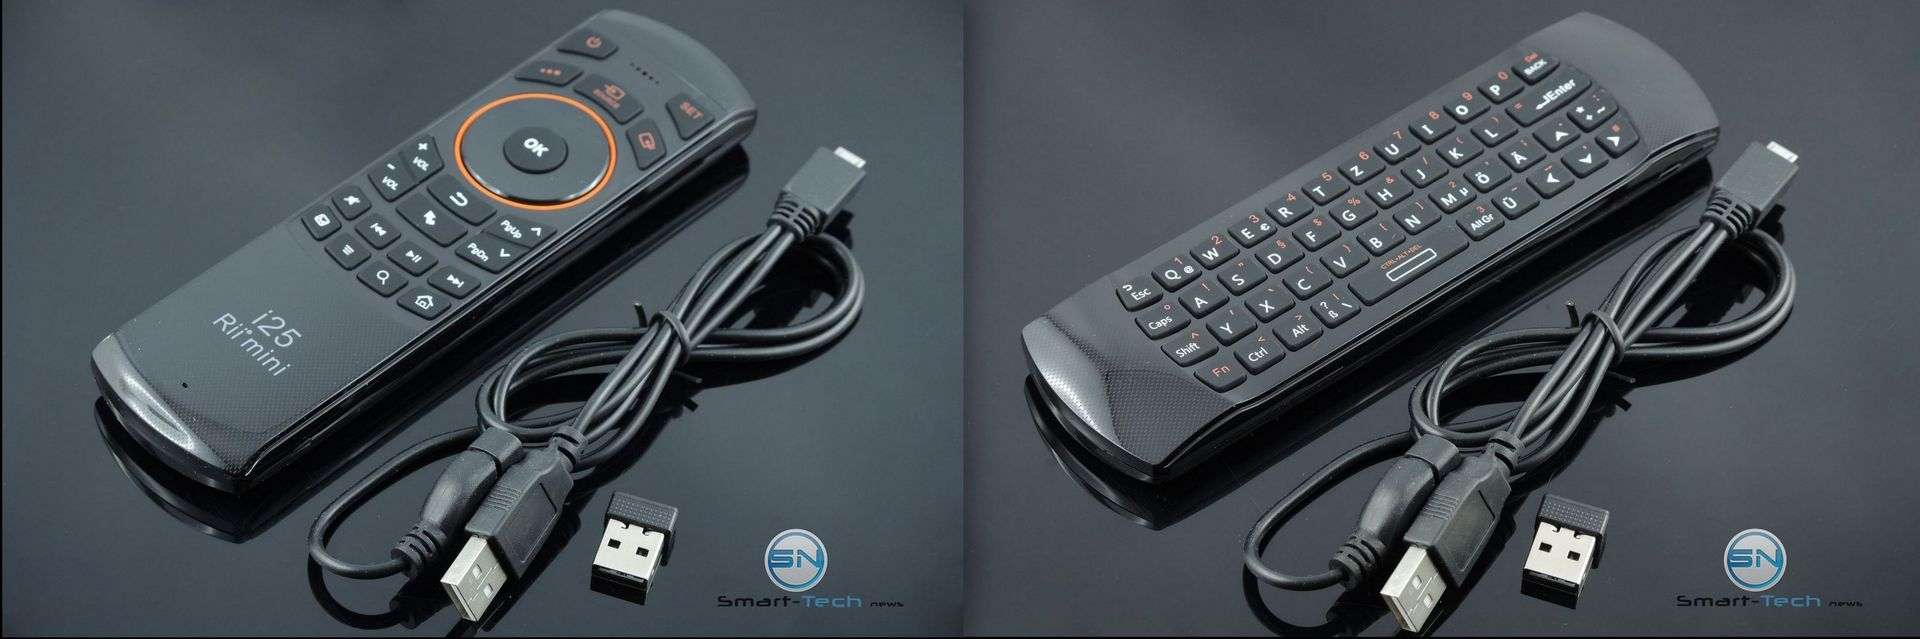 rii-mini-25-mini-wireless-air-mouse-keyboard-combo